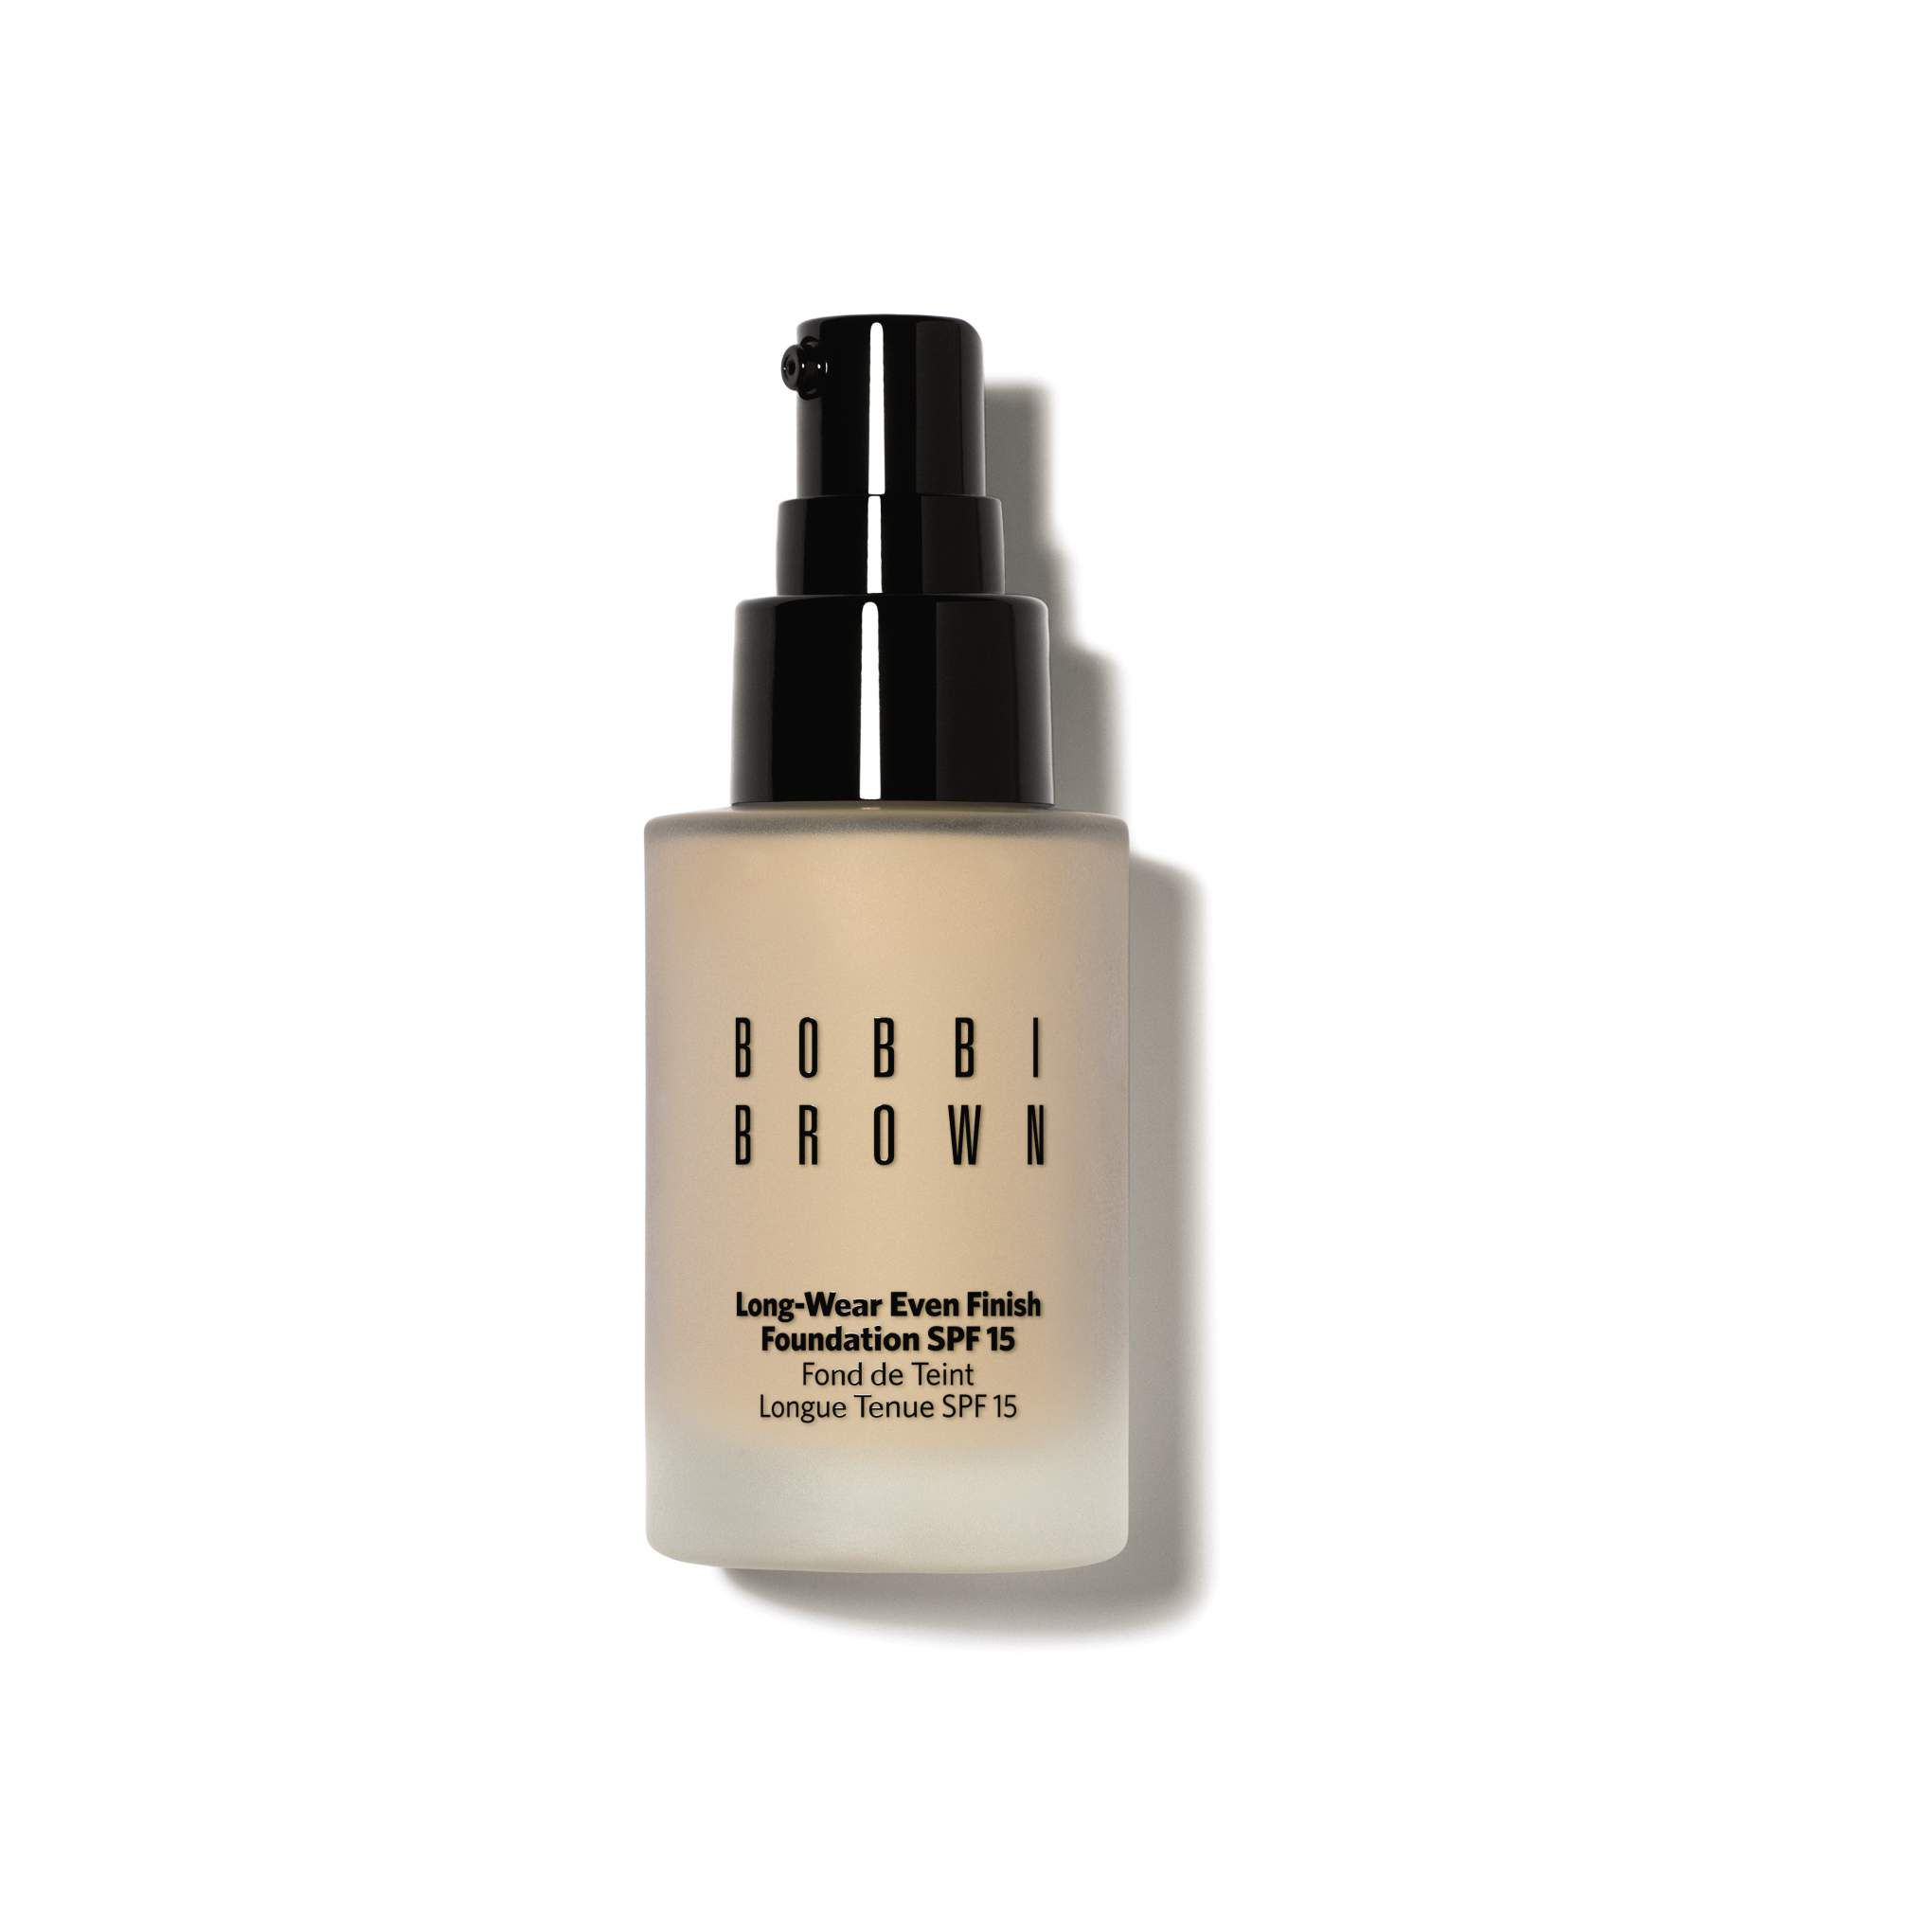 Long Wear Even Finish Foundation SPF 15